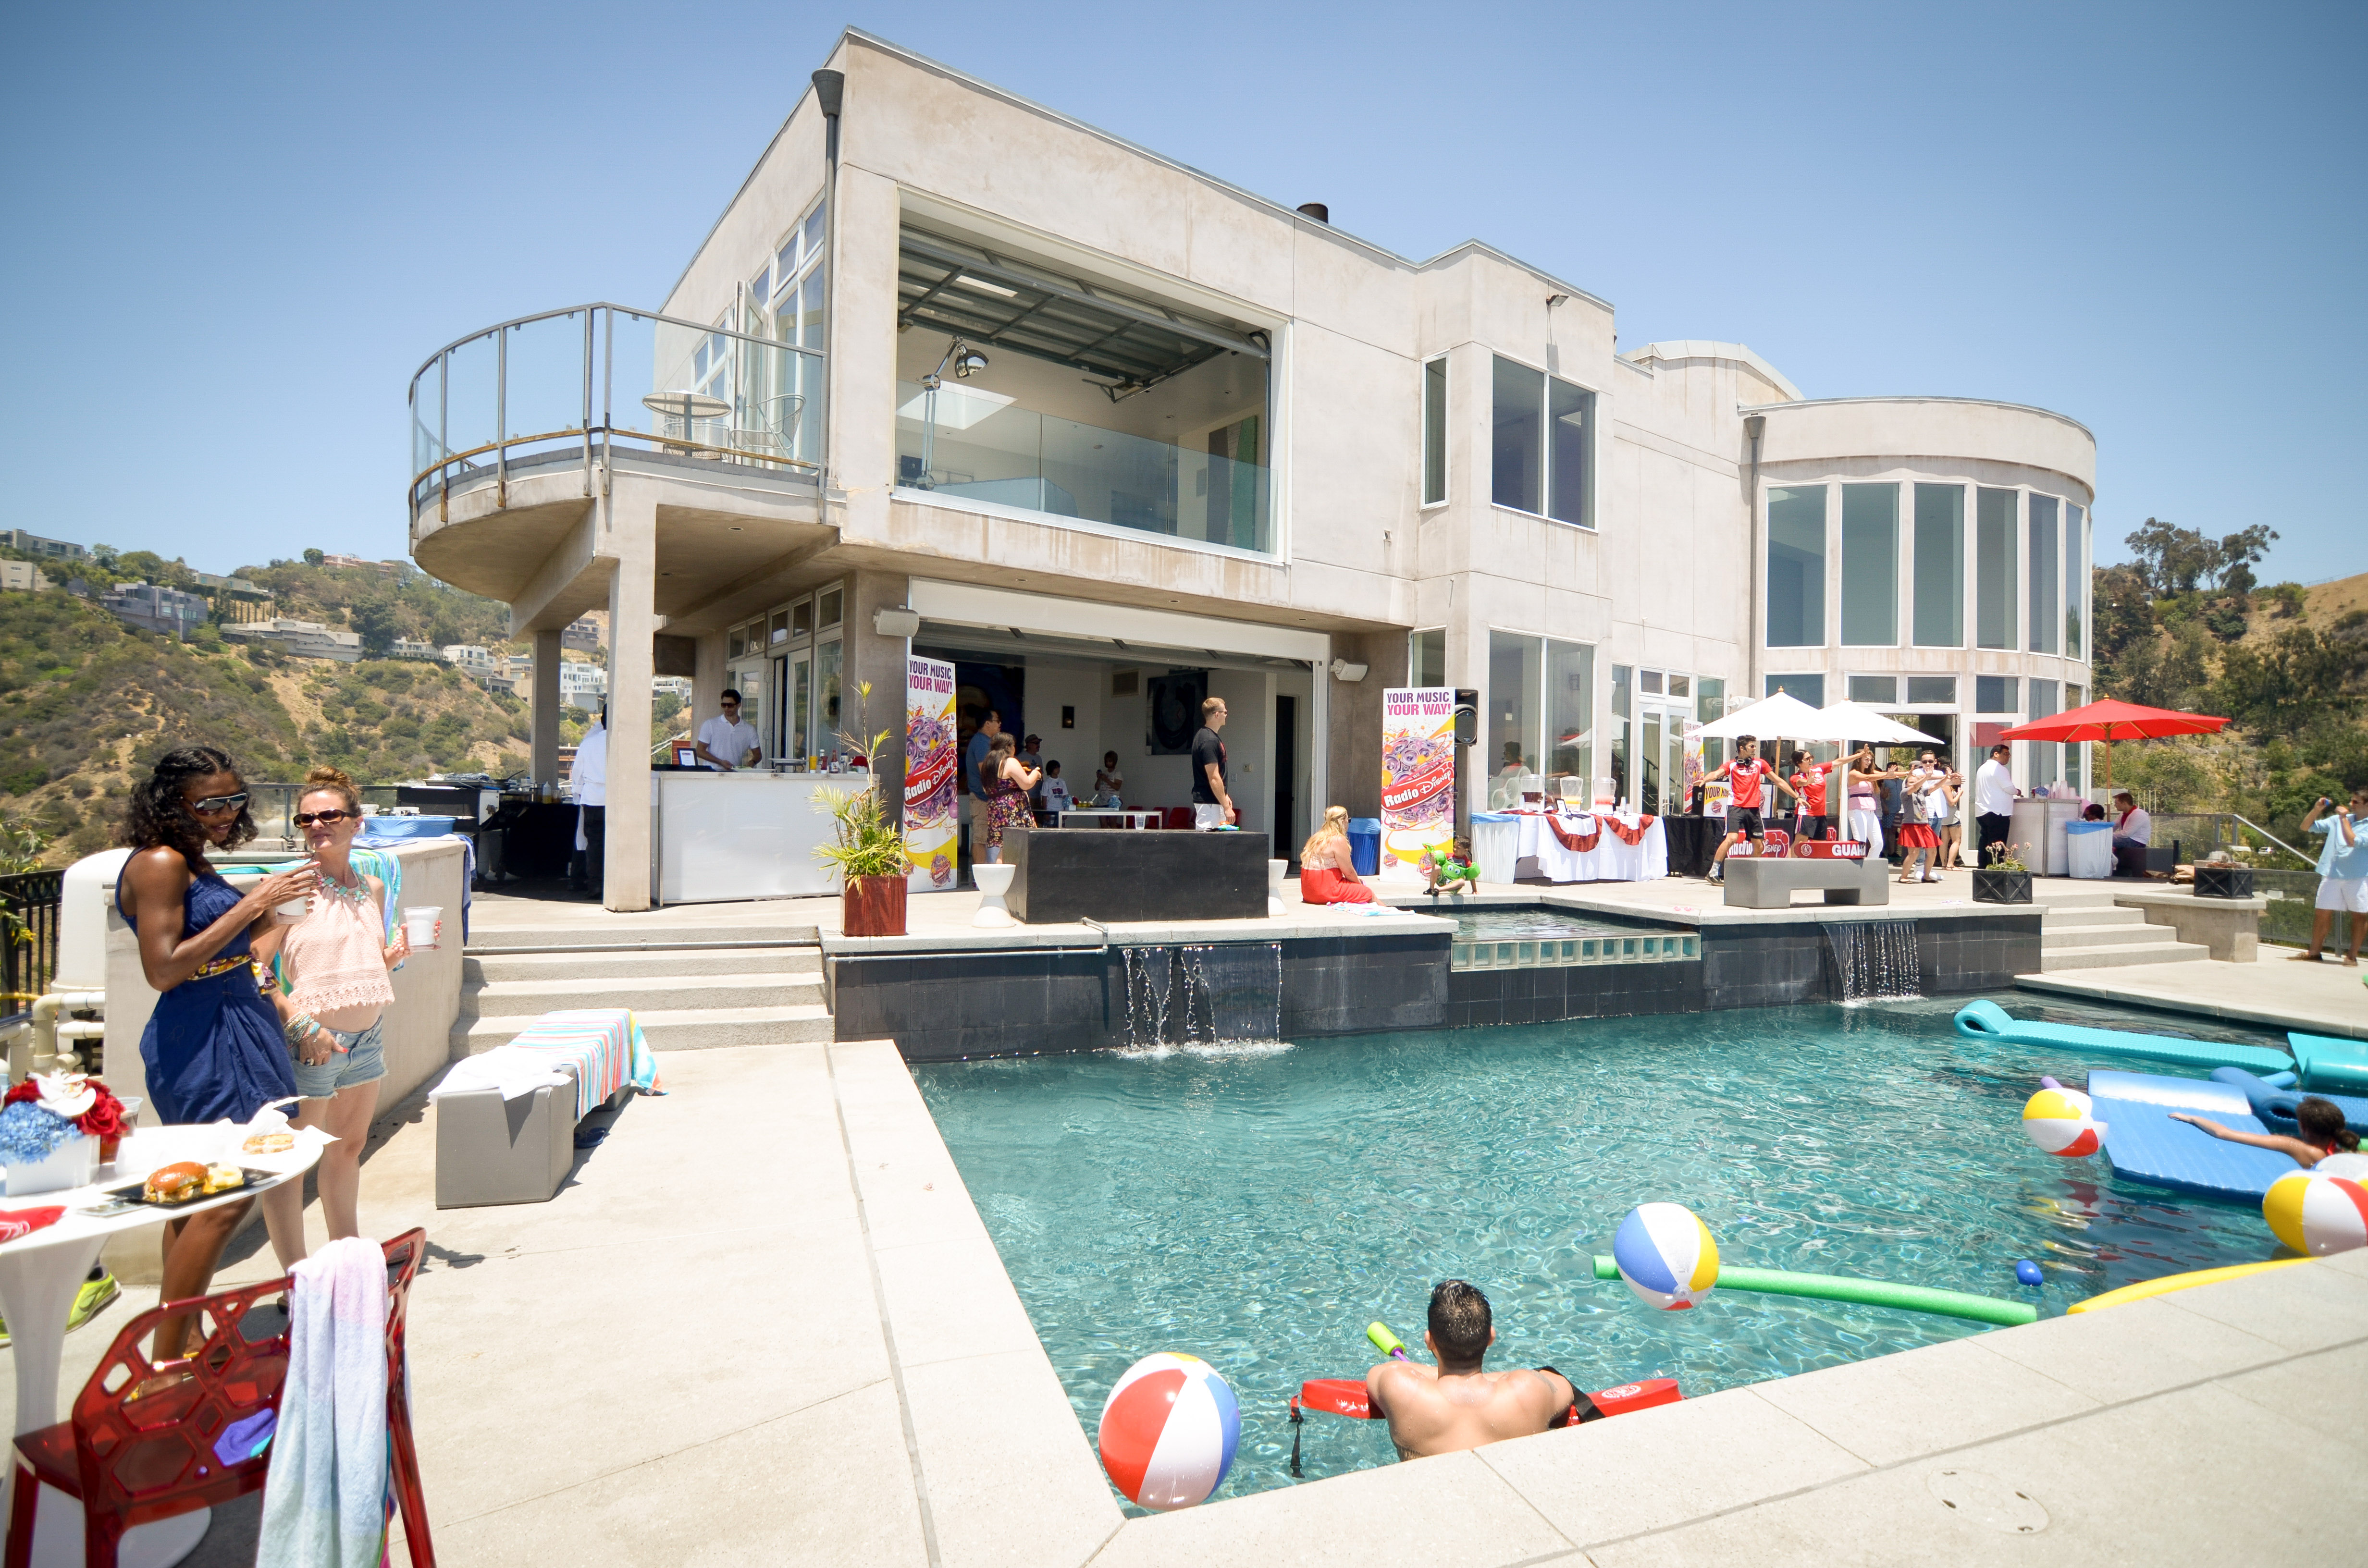 Radio disney event at the devoe house hollywood hills for Hollywood mansion party rental